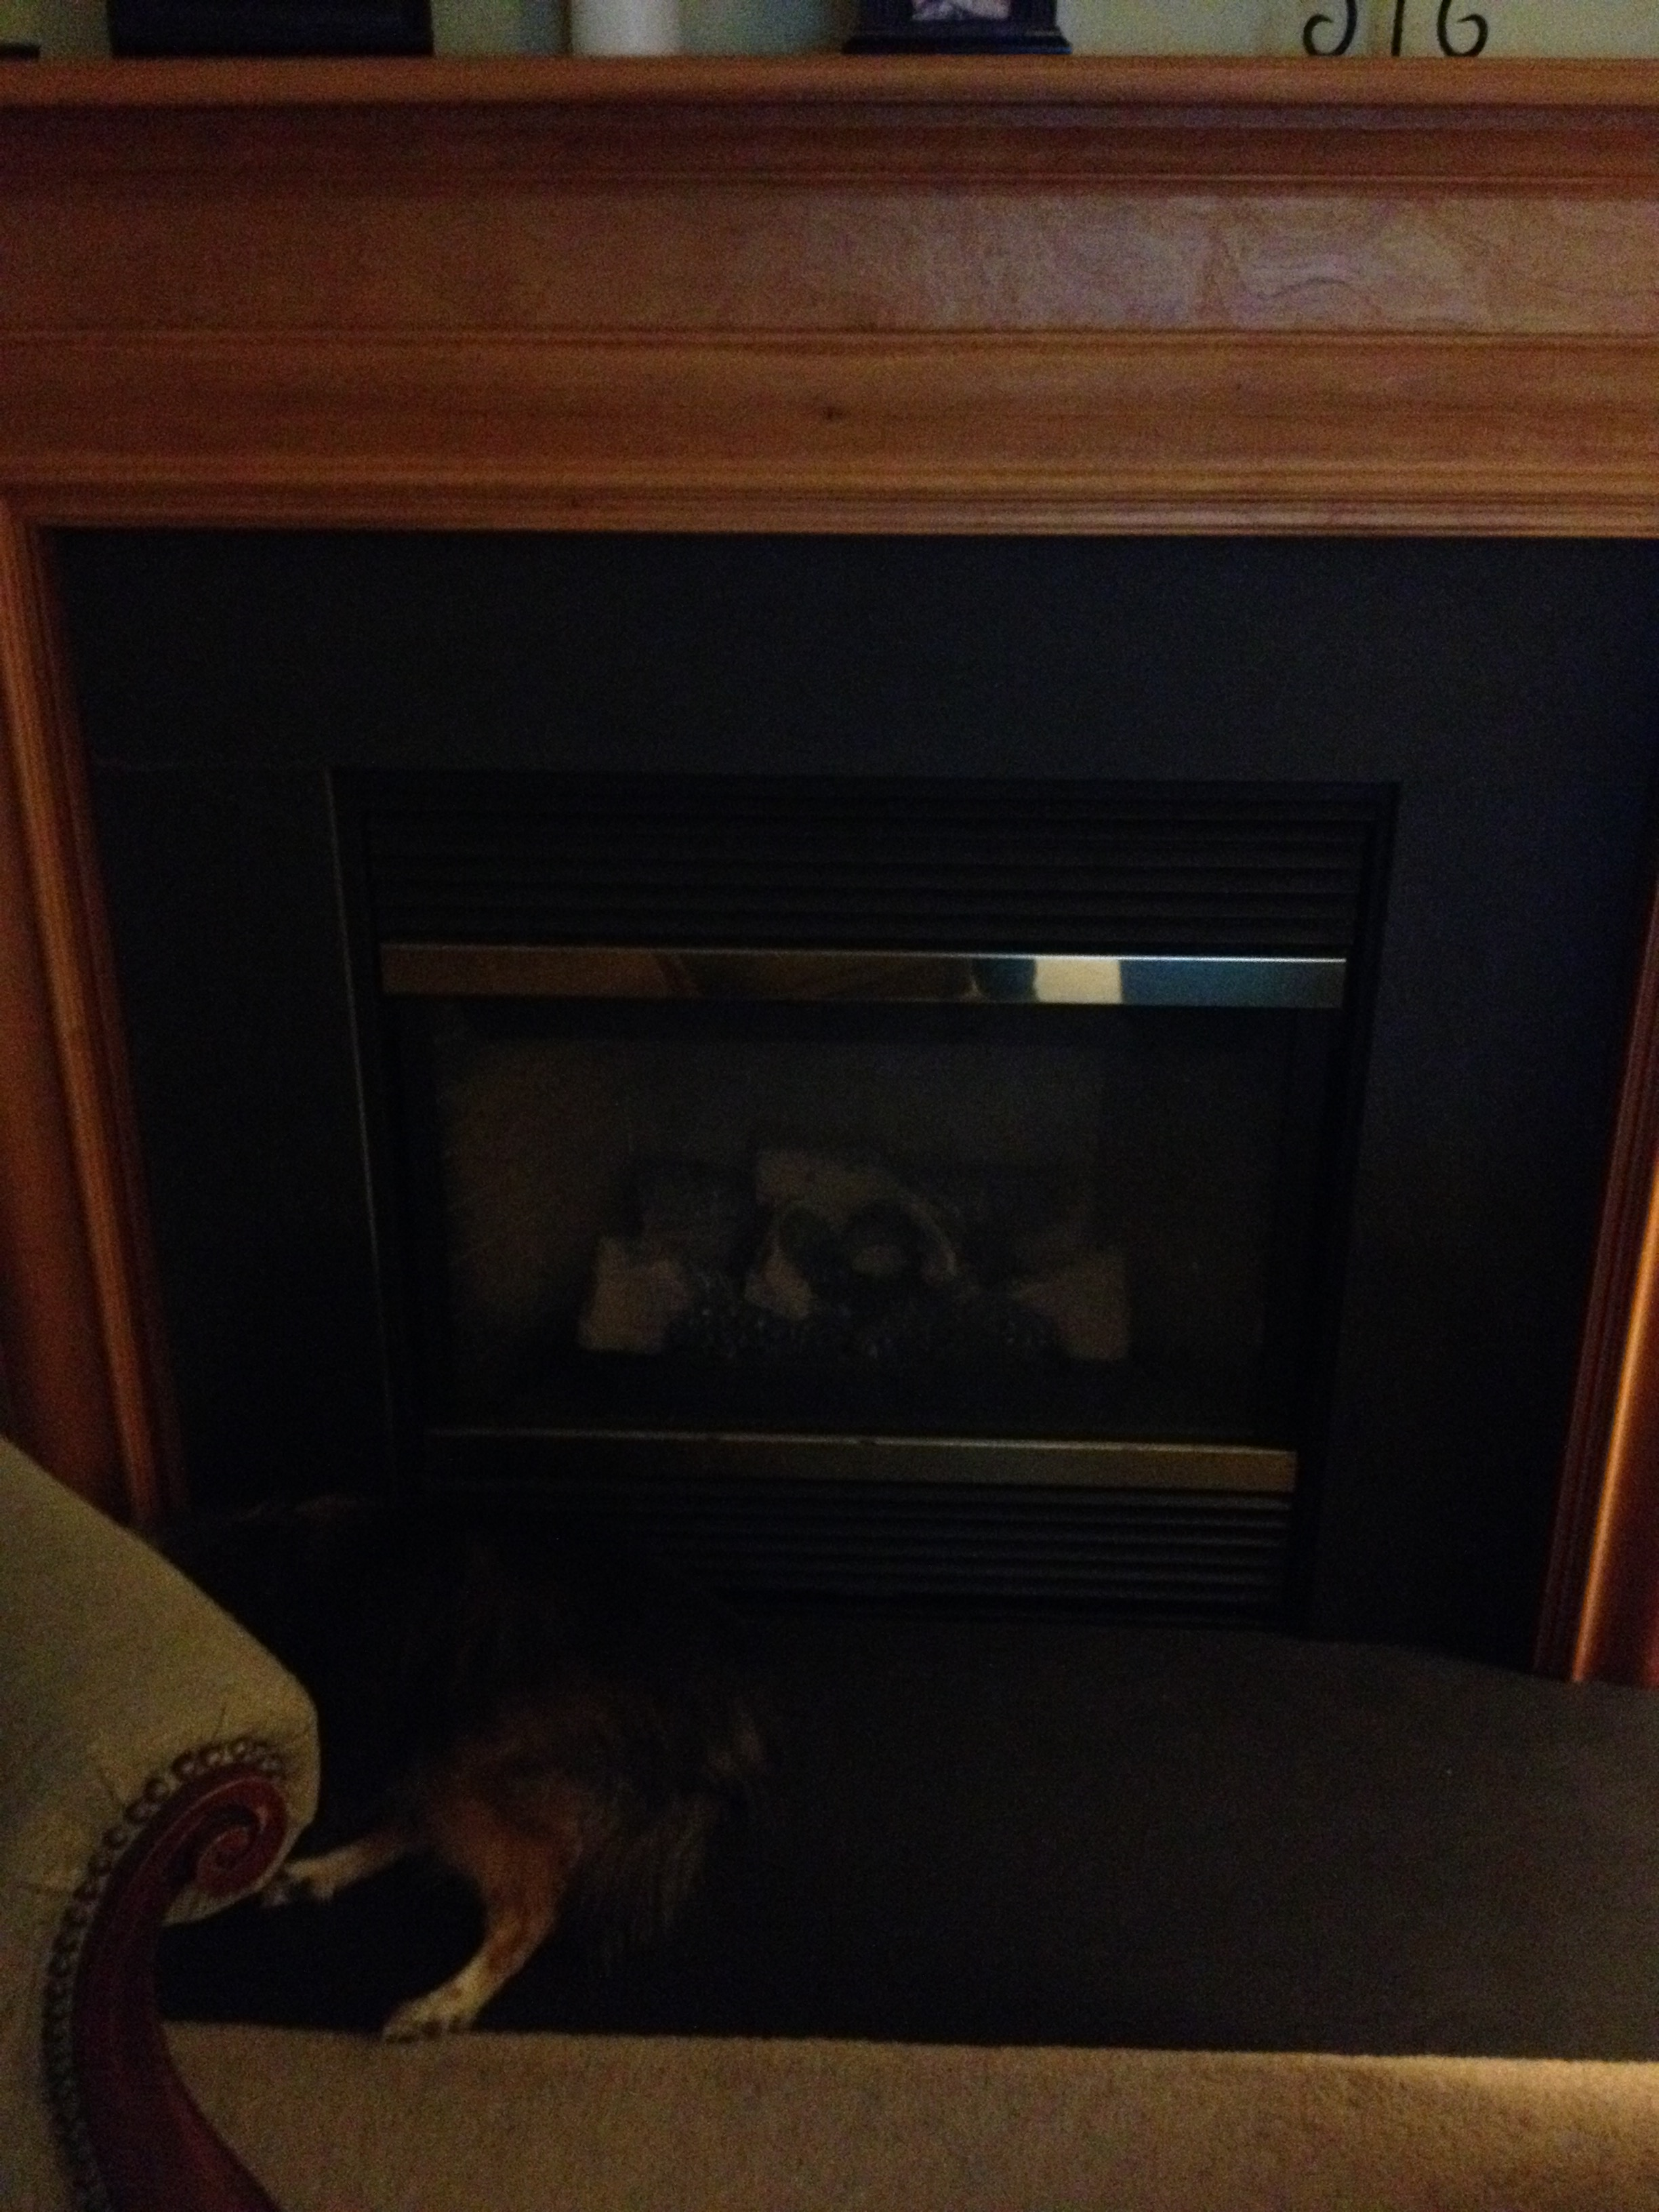 i have a majestic direct vent fireplace which was installed during